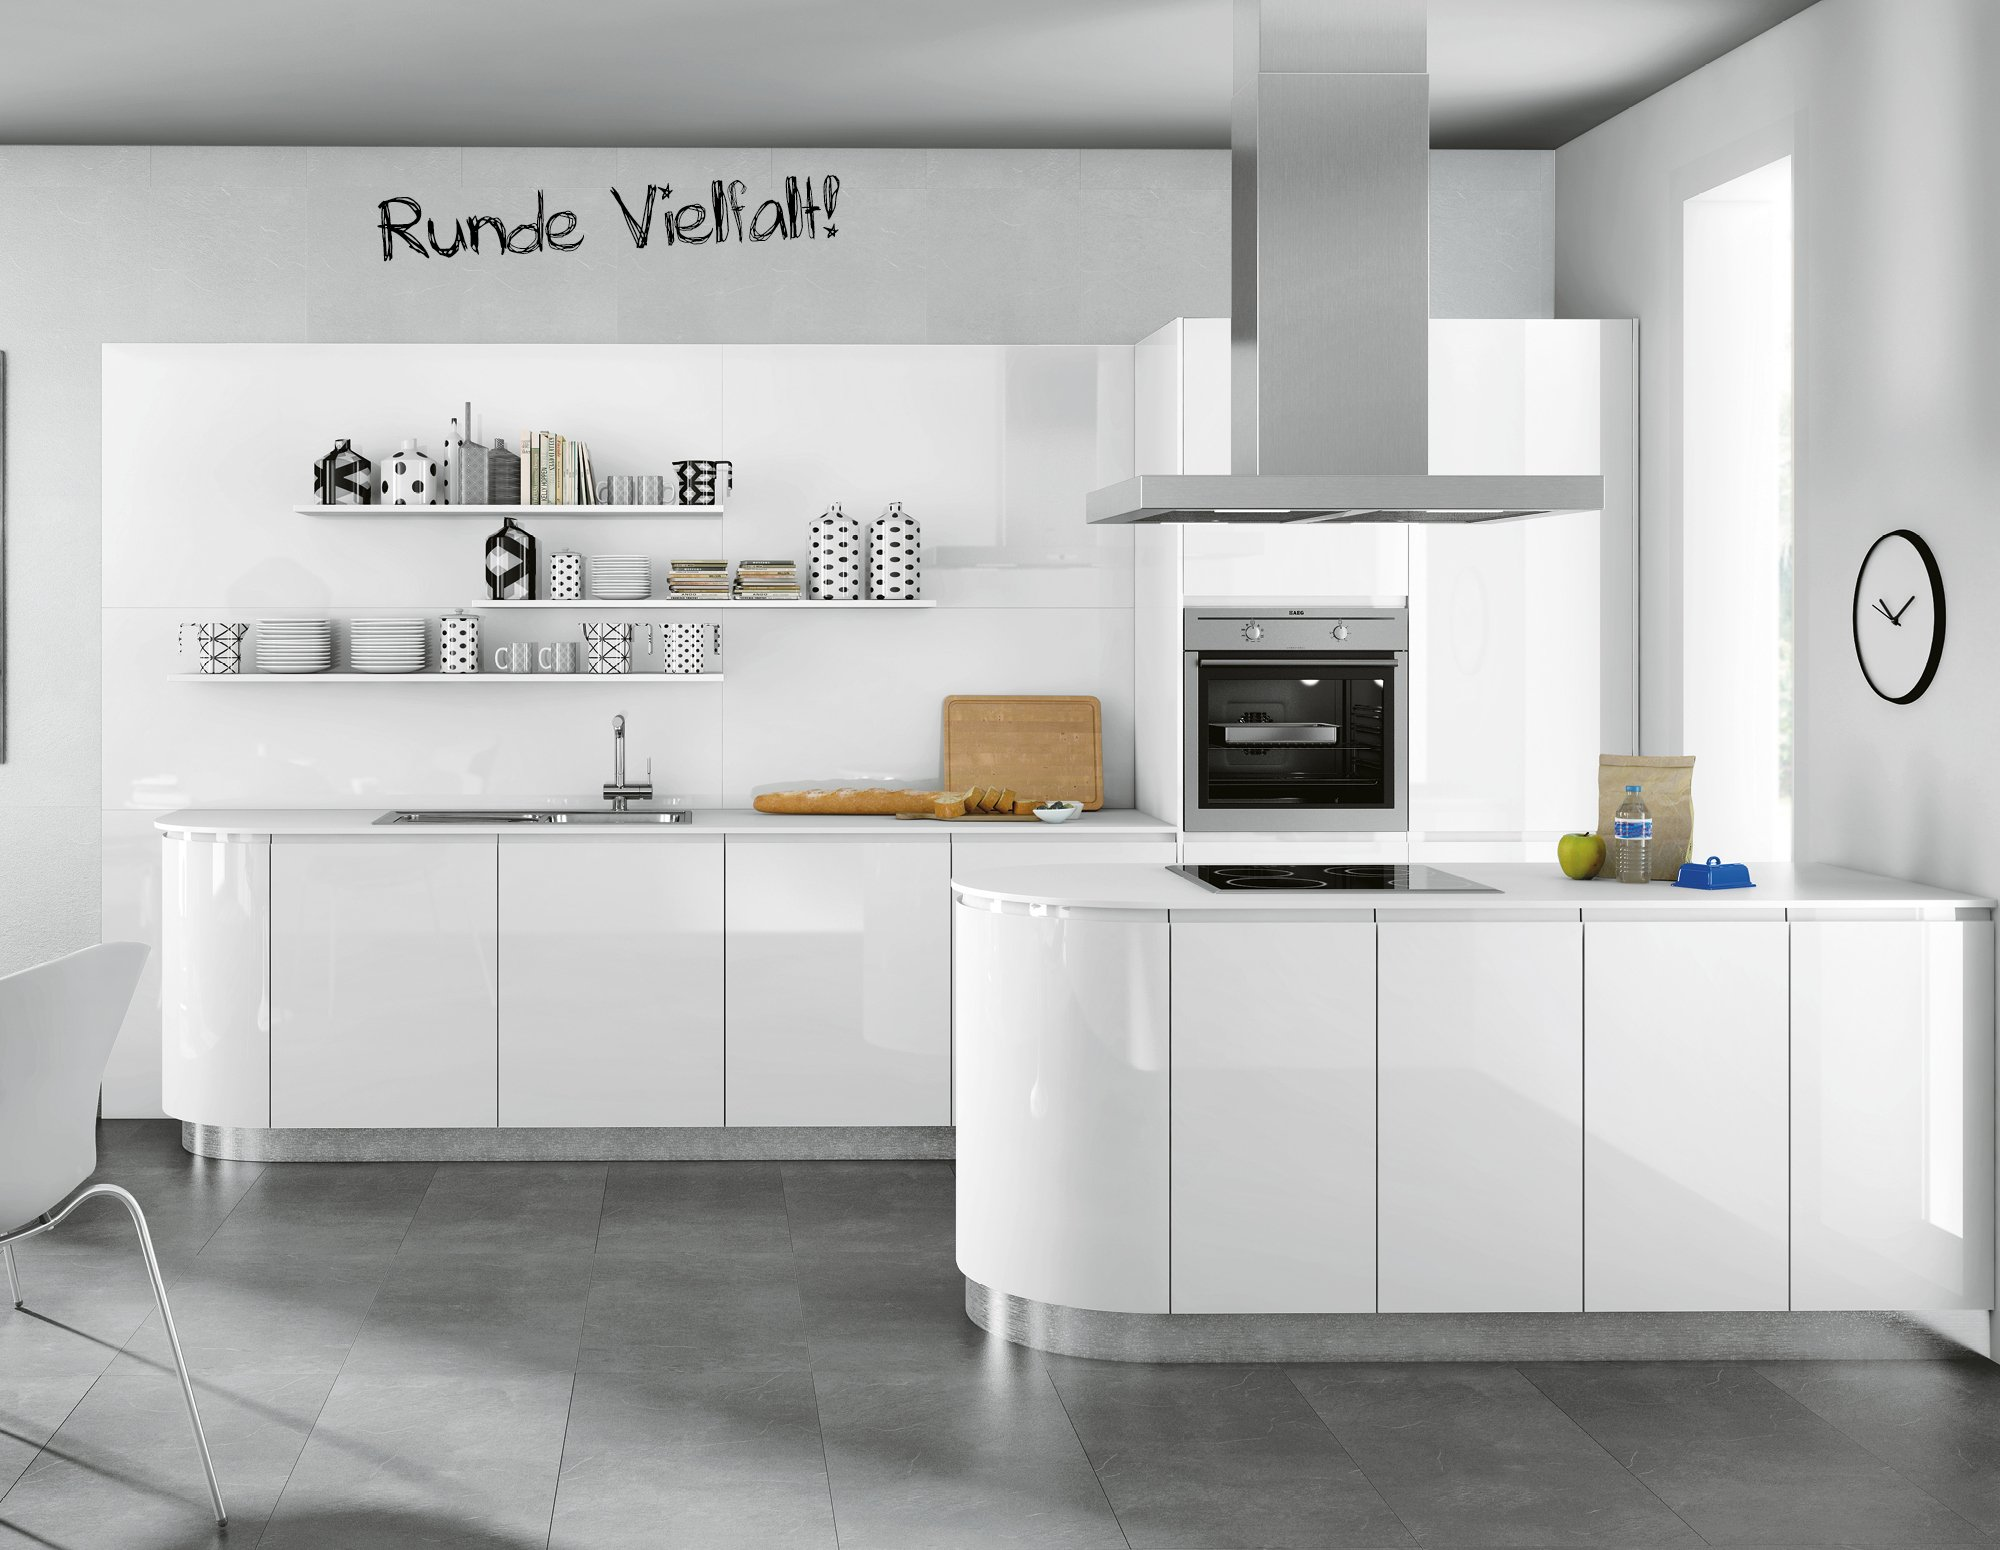 Full Size of Dunkle Küche Mit Insel Küche Mit Insel Ikea Beleuchtung Küche Mit Insel Küche Mit Insel Zum Sitzen Küche Küche Mit Insel